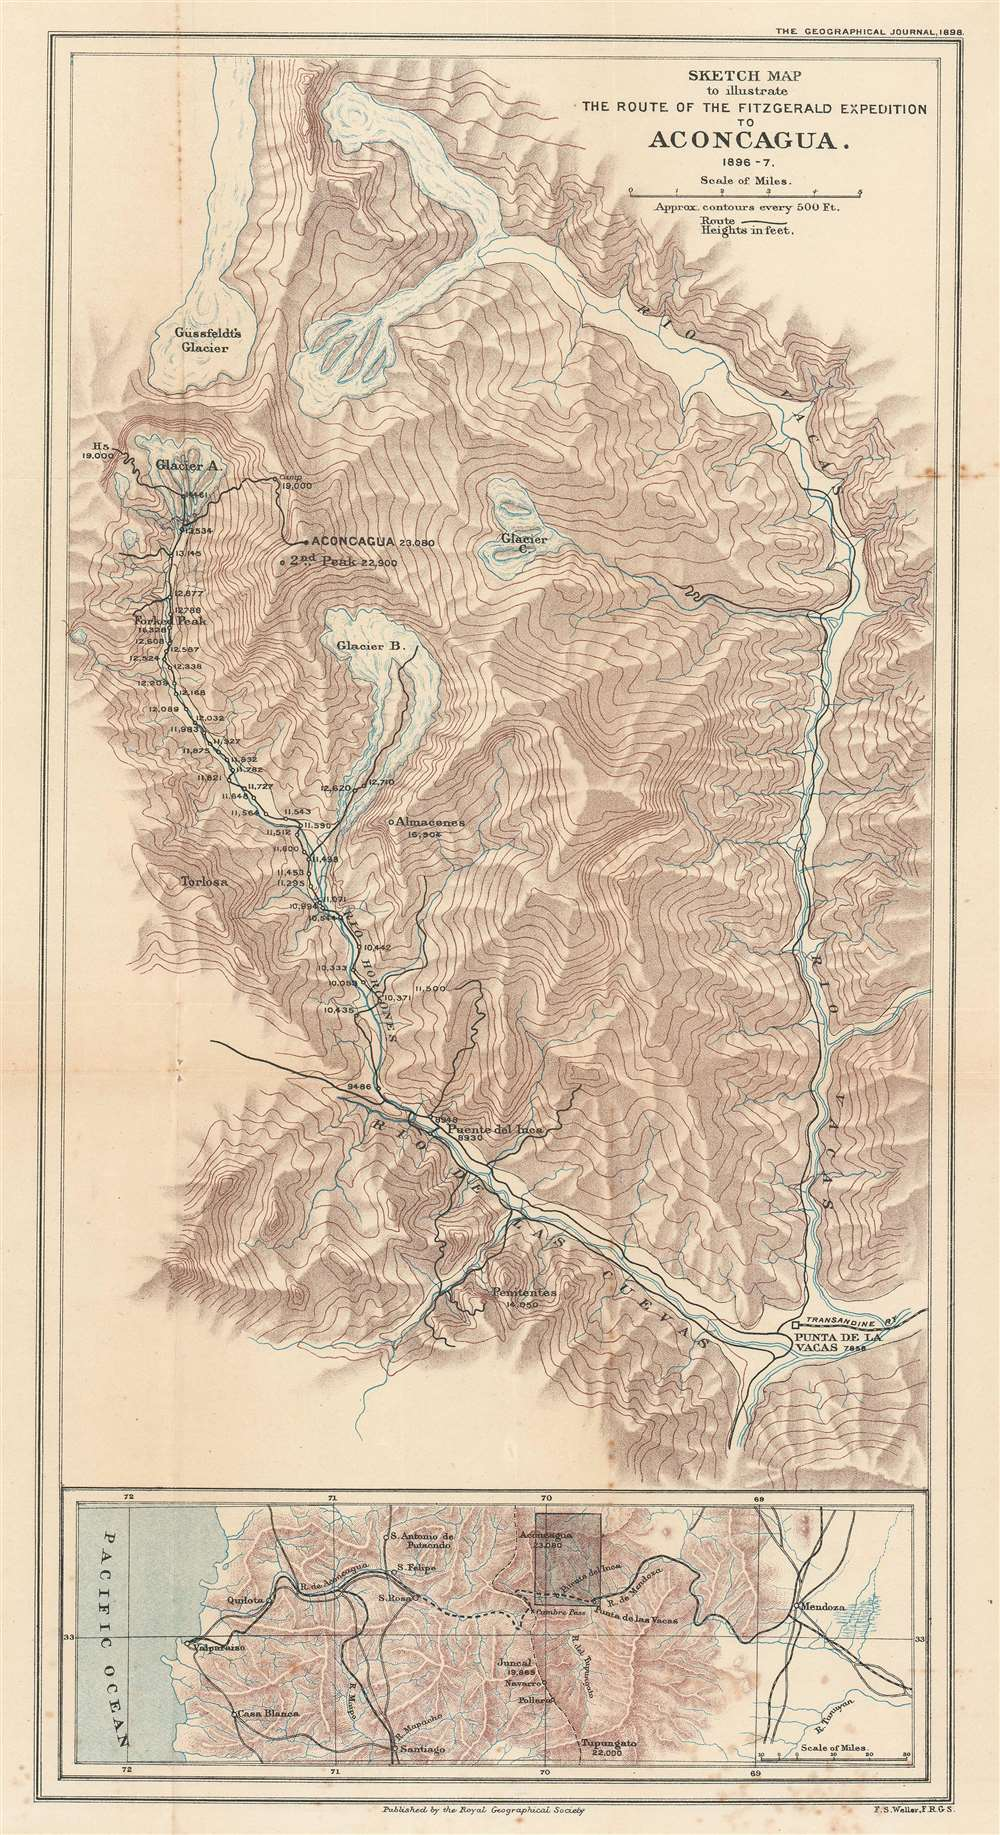 Sketch Map to illustrate the Route of the Fitzgerald Expedition to Aconcagua 1896 - 7. - Main View